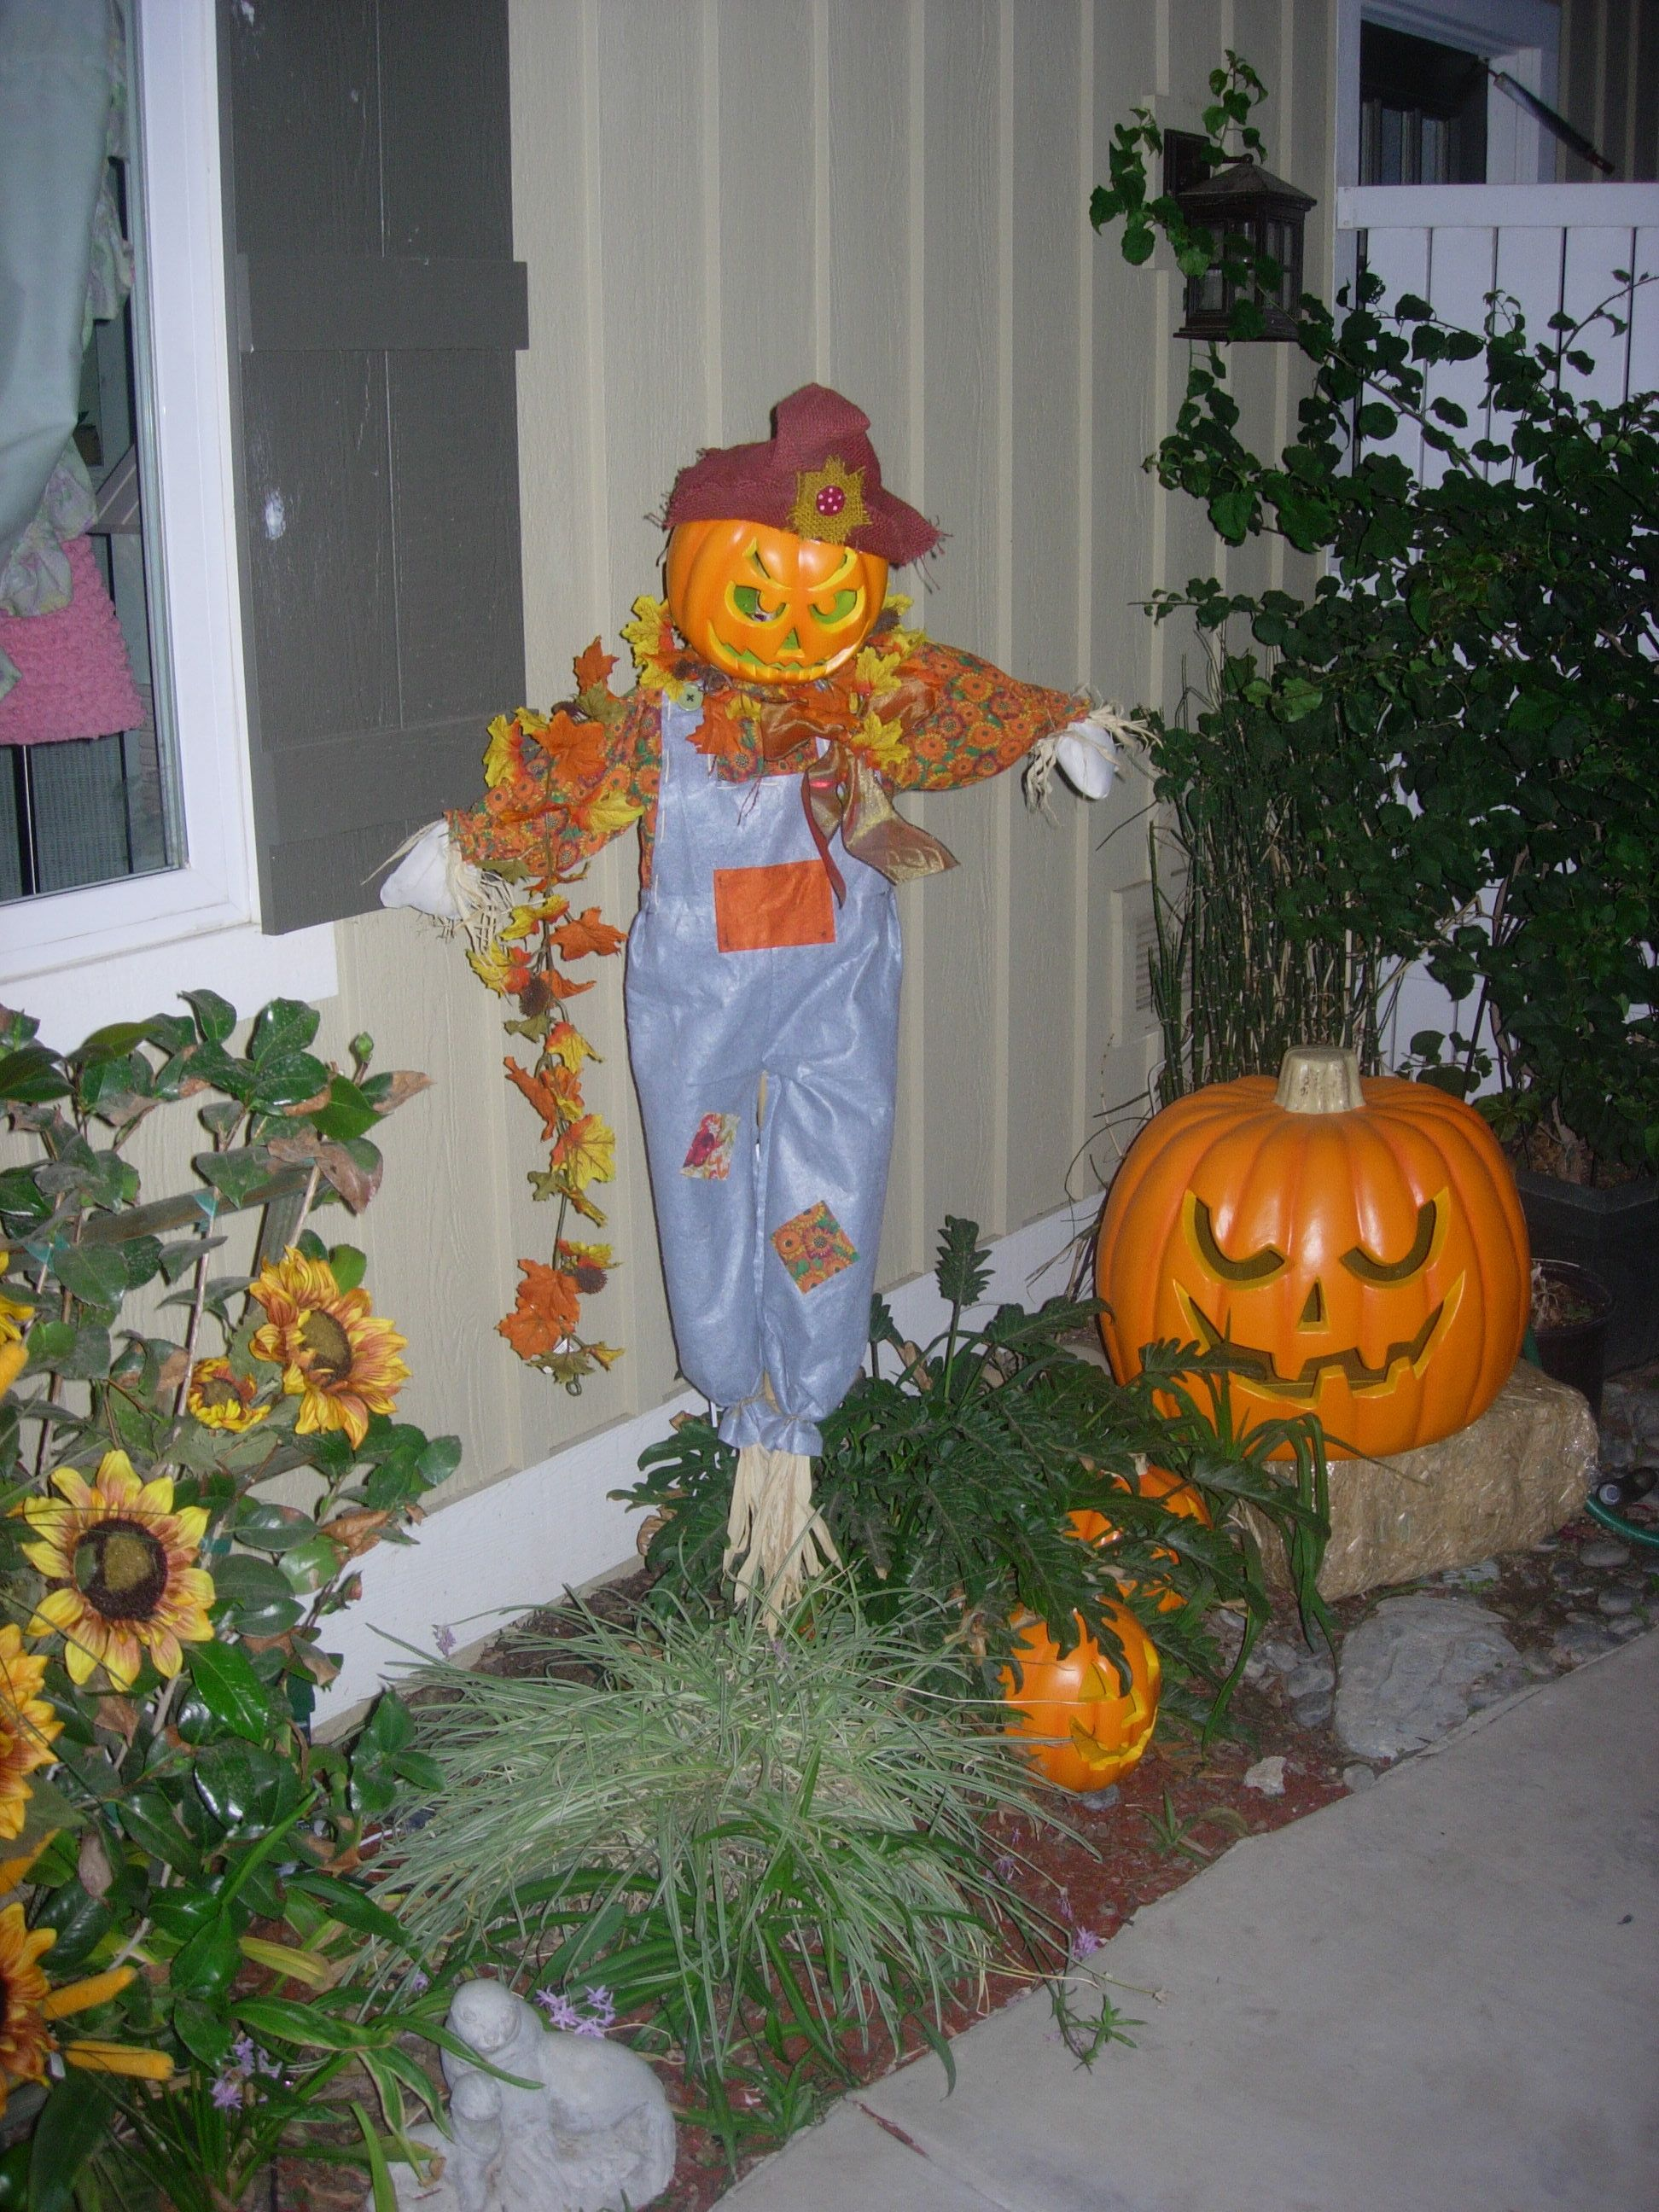 Decorate outside with plenty of pumpkins. Scary faces can